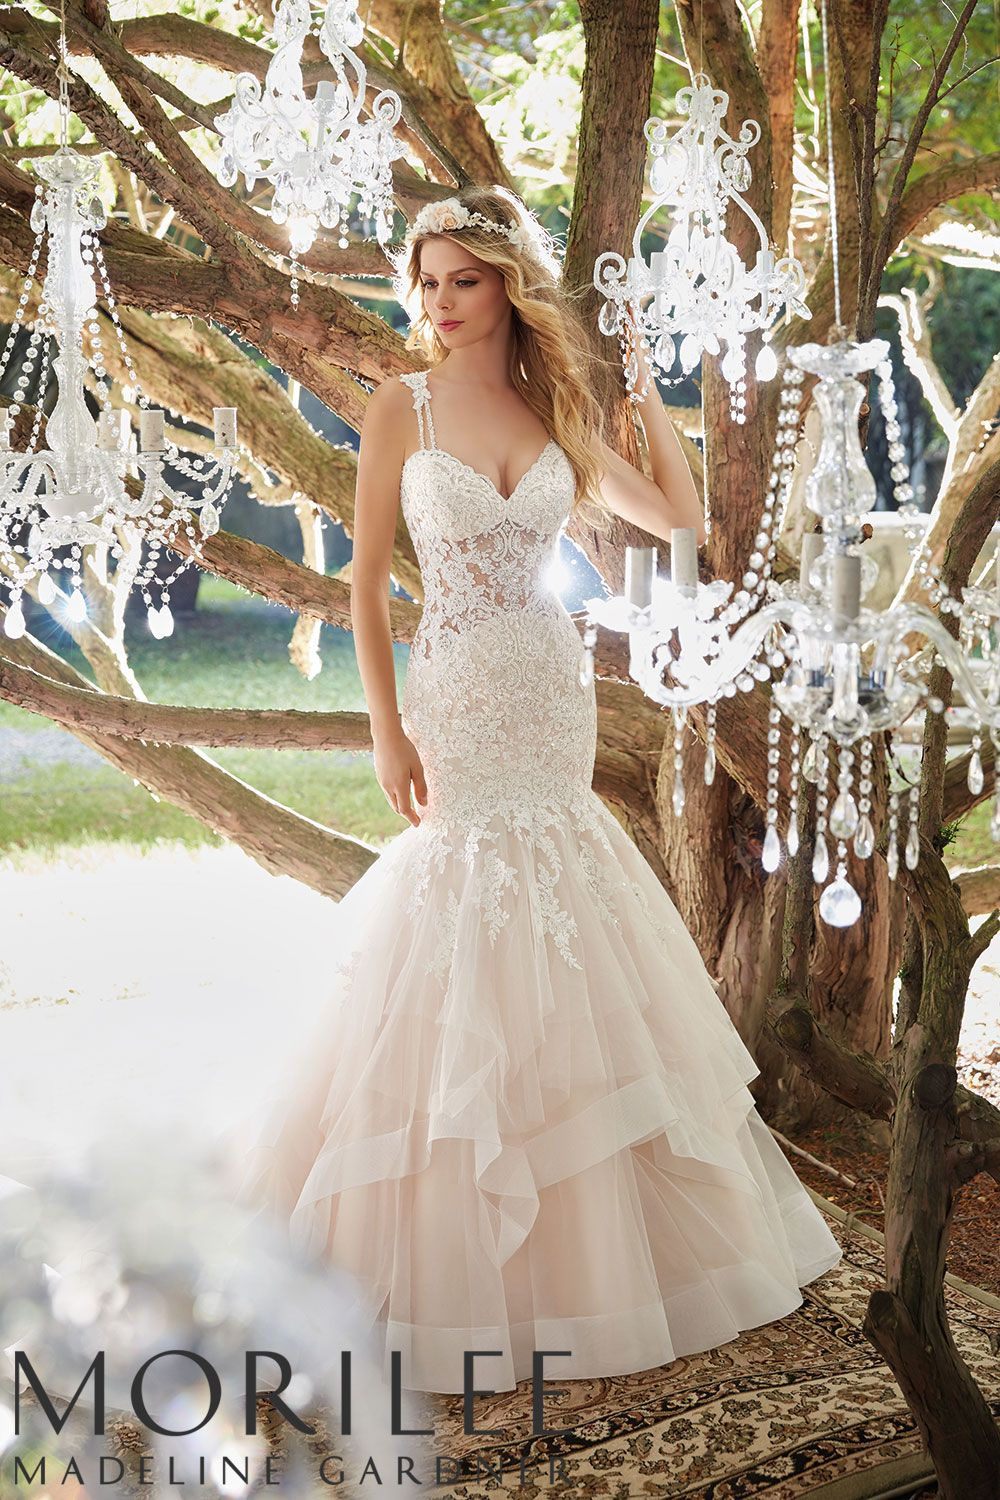 Glamorous Mermaid Wedding Gown Featuring Crystal Beaded Embroidered Lace Appliques And A Circul Perfect Wedding Dress Wedding Dresses Strapless Bridal Dresses [ 2630 x 1834 Pixel ]